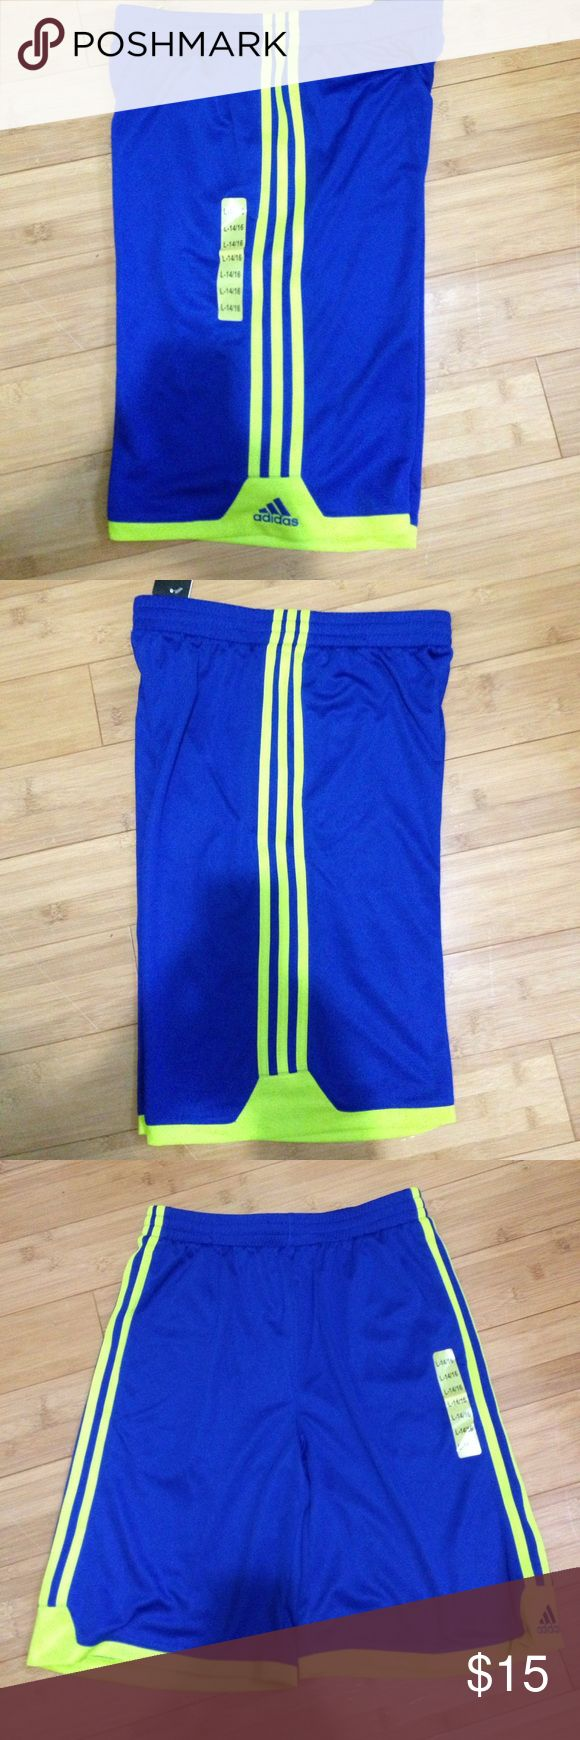 "Adidas NWT Blue & Neon Green Shorts New with tags These are a Size Large(14-16) women's Basketball Shorts. They measure 21"" from waist to bottom, inseam is 10"", waist laid flat and un-stretched is 14"", elastic waist with a drawstring. No pockets Adidas Shorts"